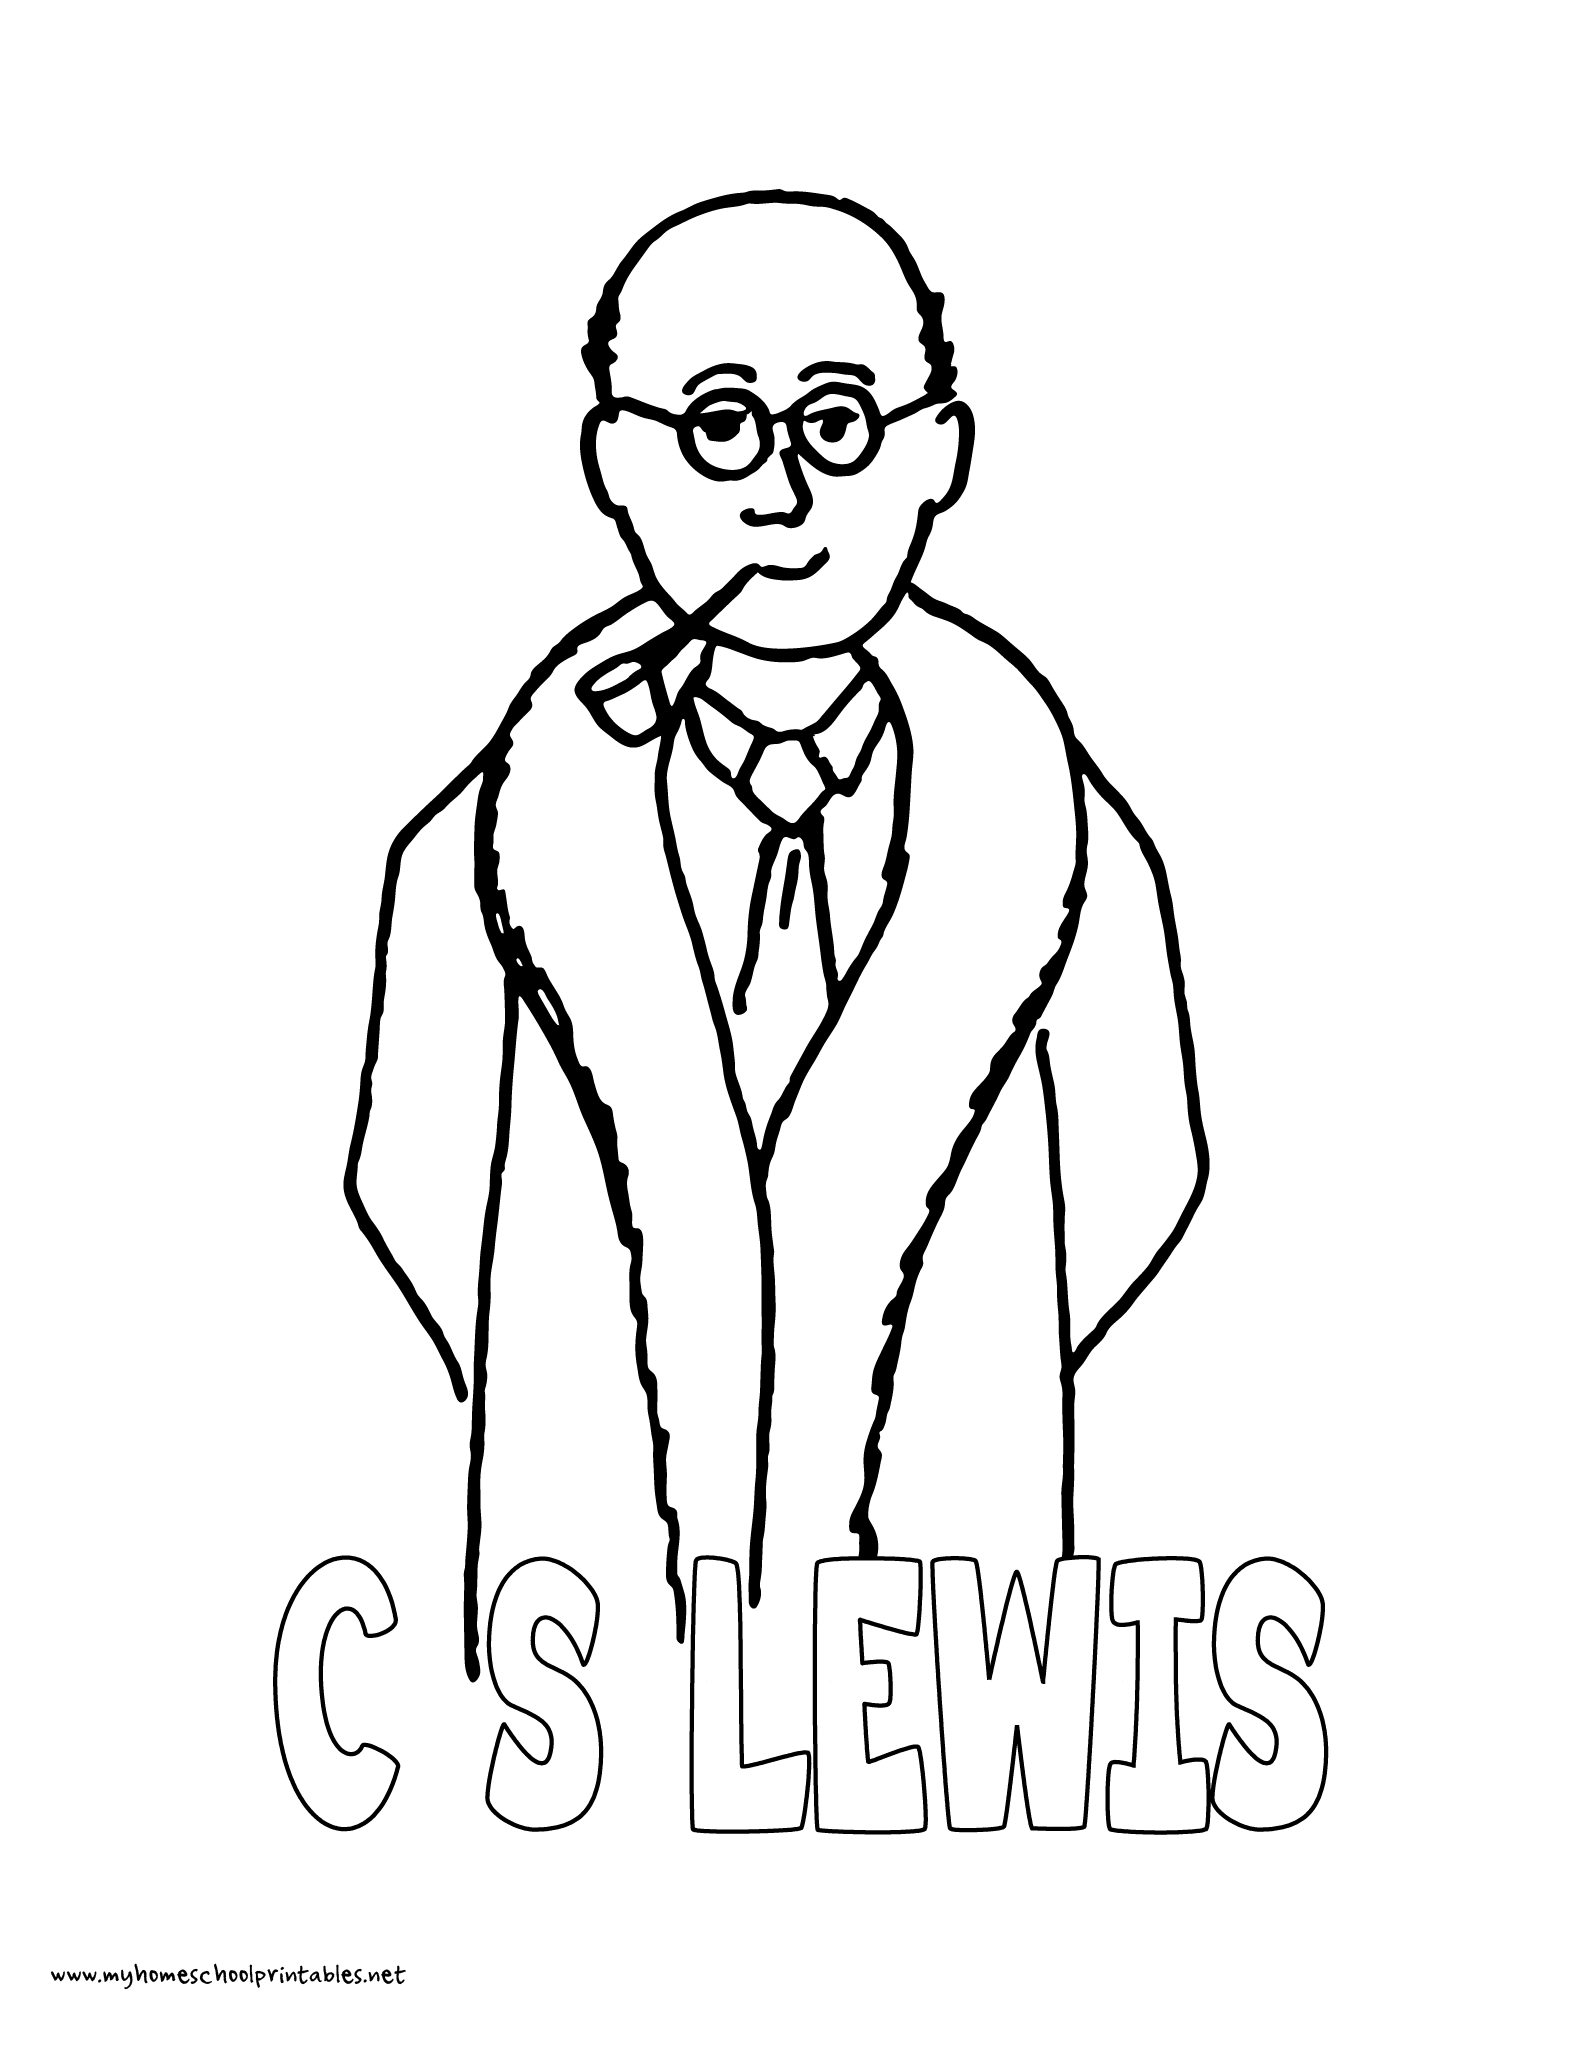 1594x2063 World History Coloring Pages Printables C.s. Lewis With Pipe